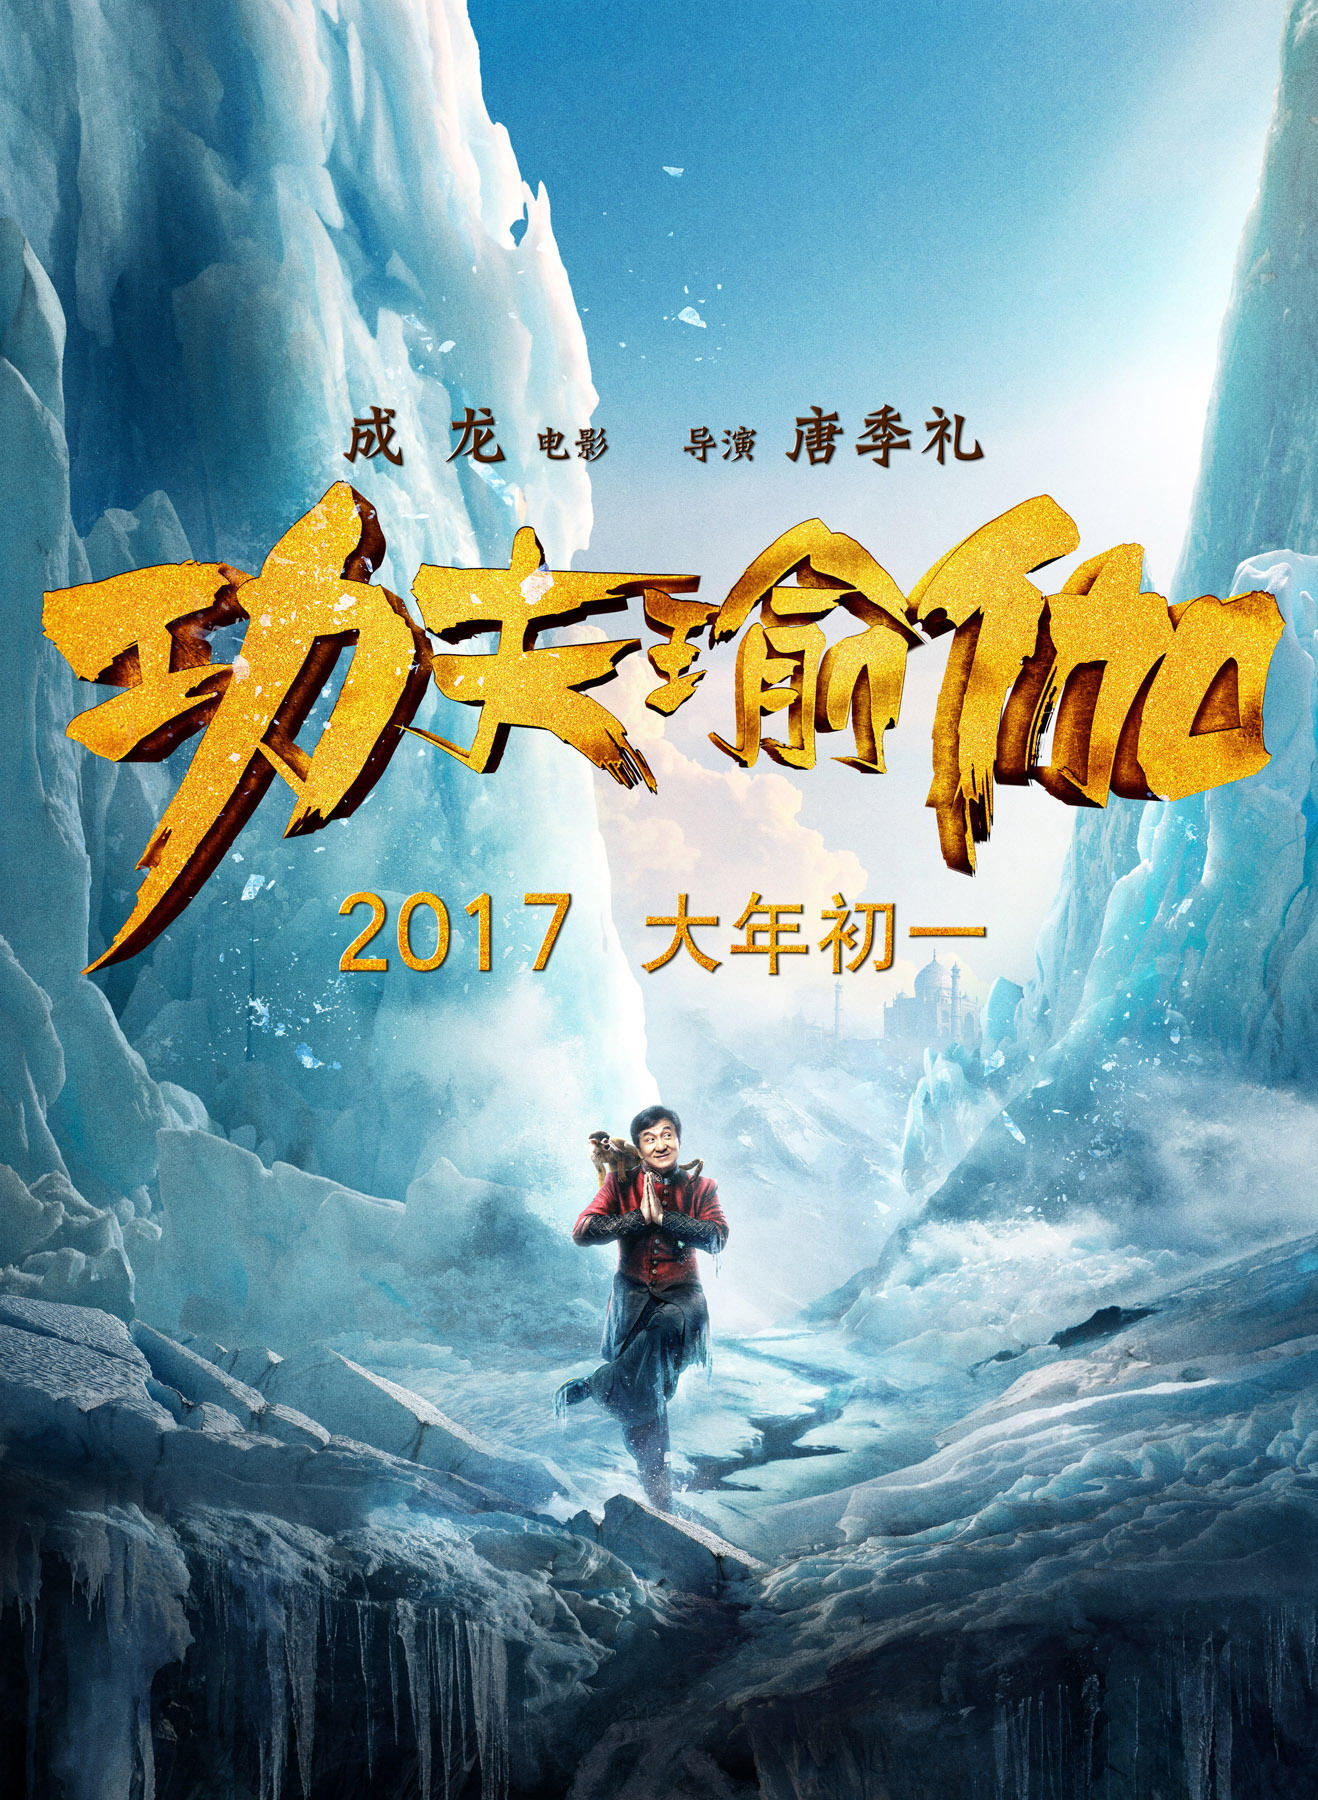 cast of kungfu yoga